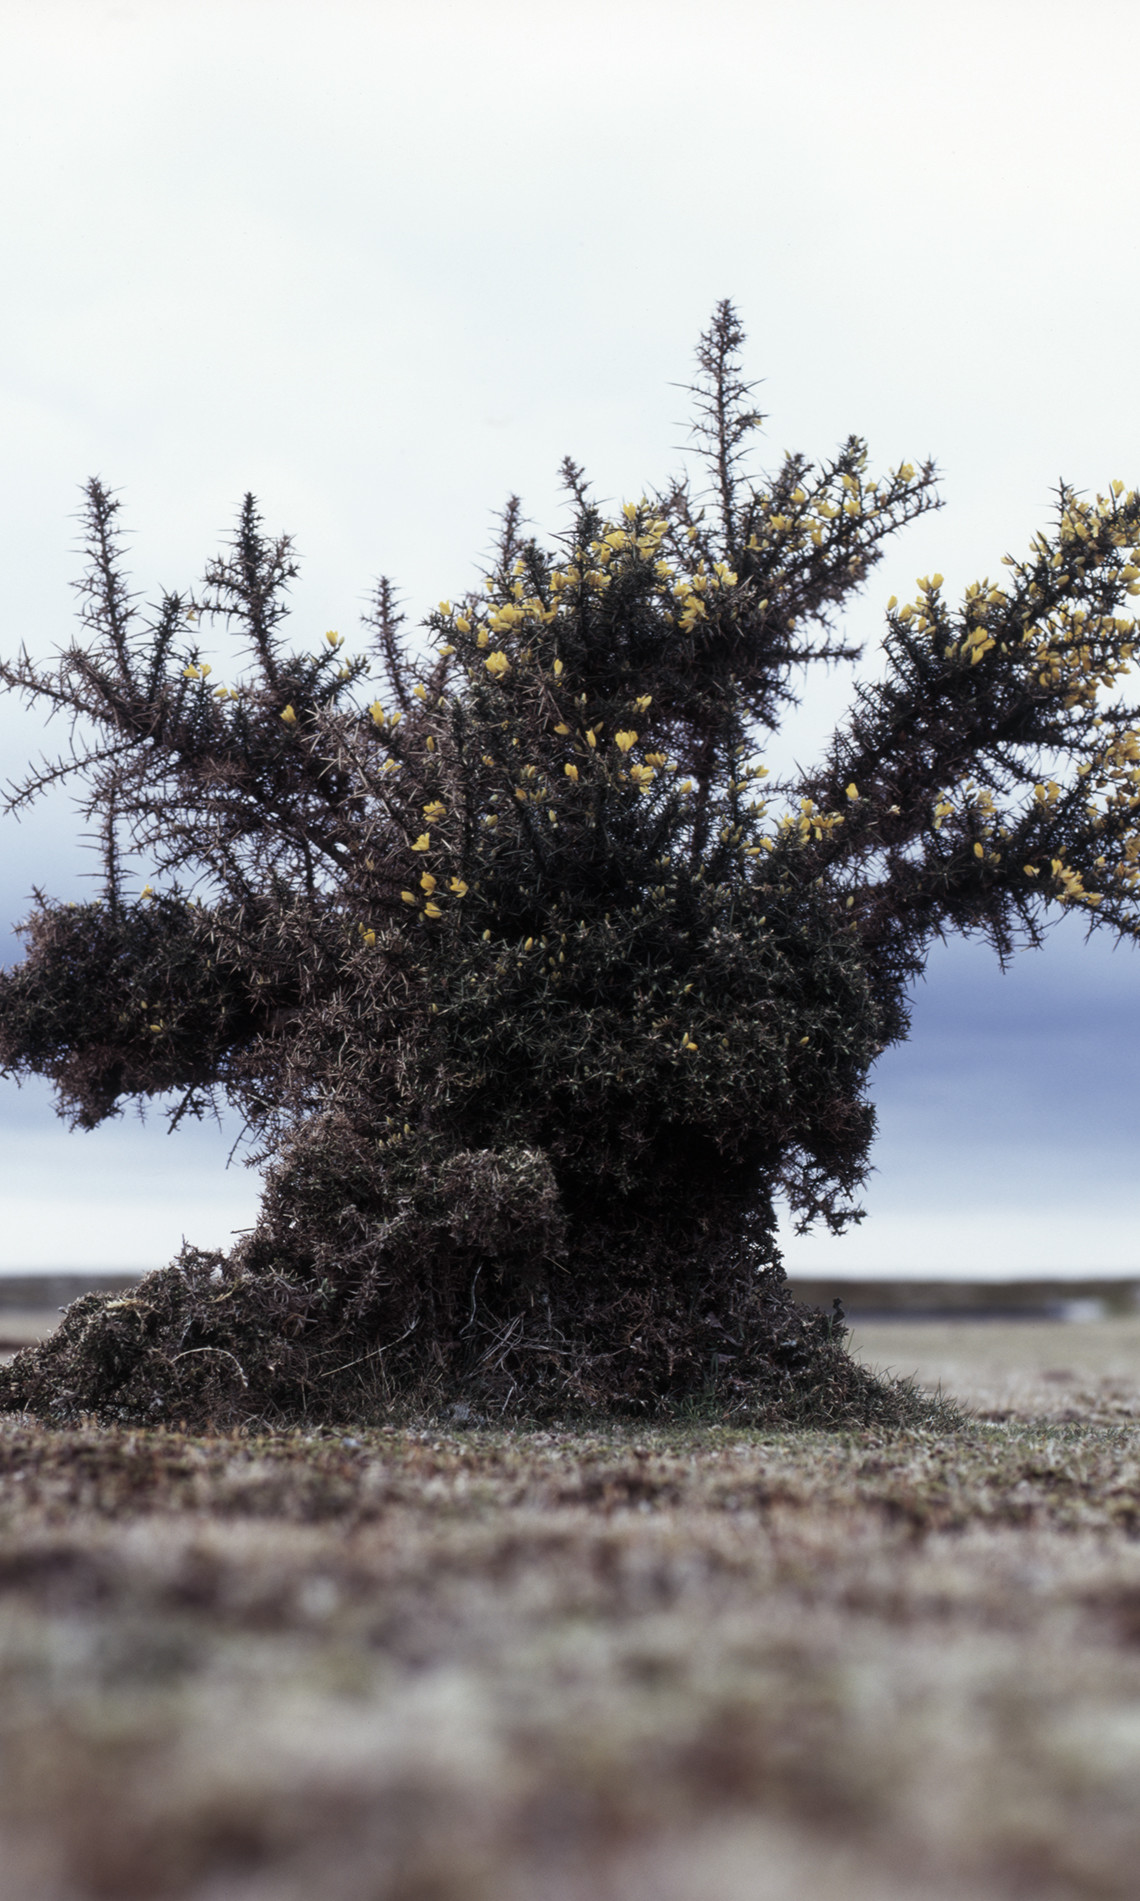 James Hankey, Gorse